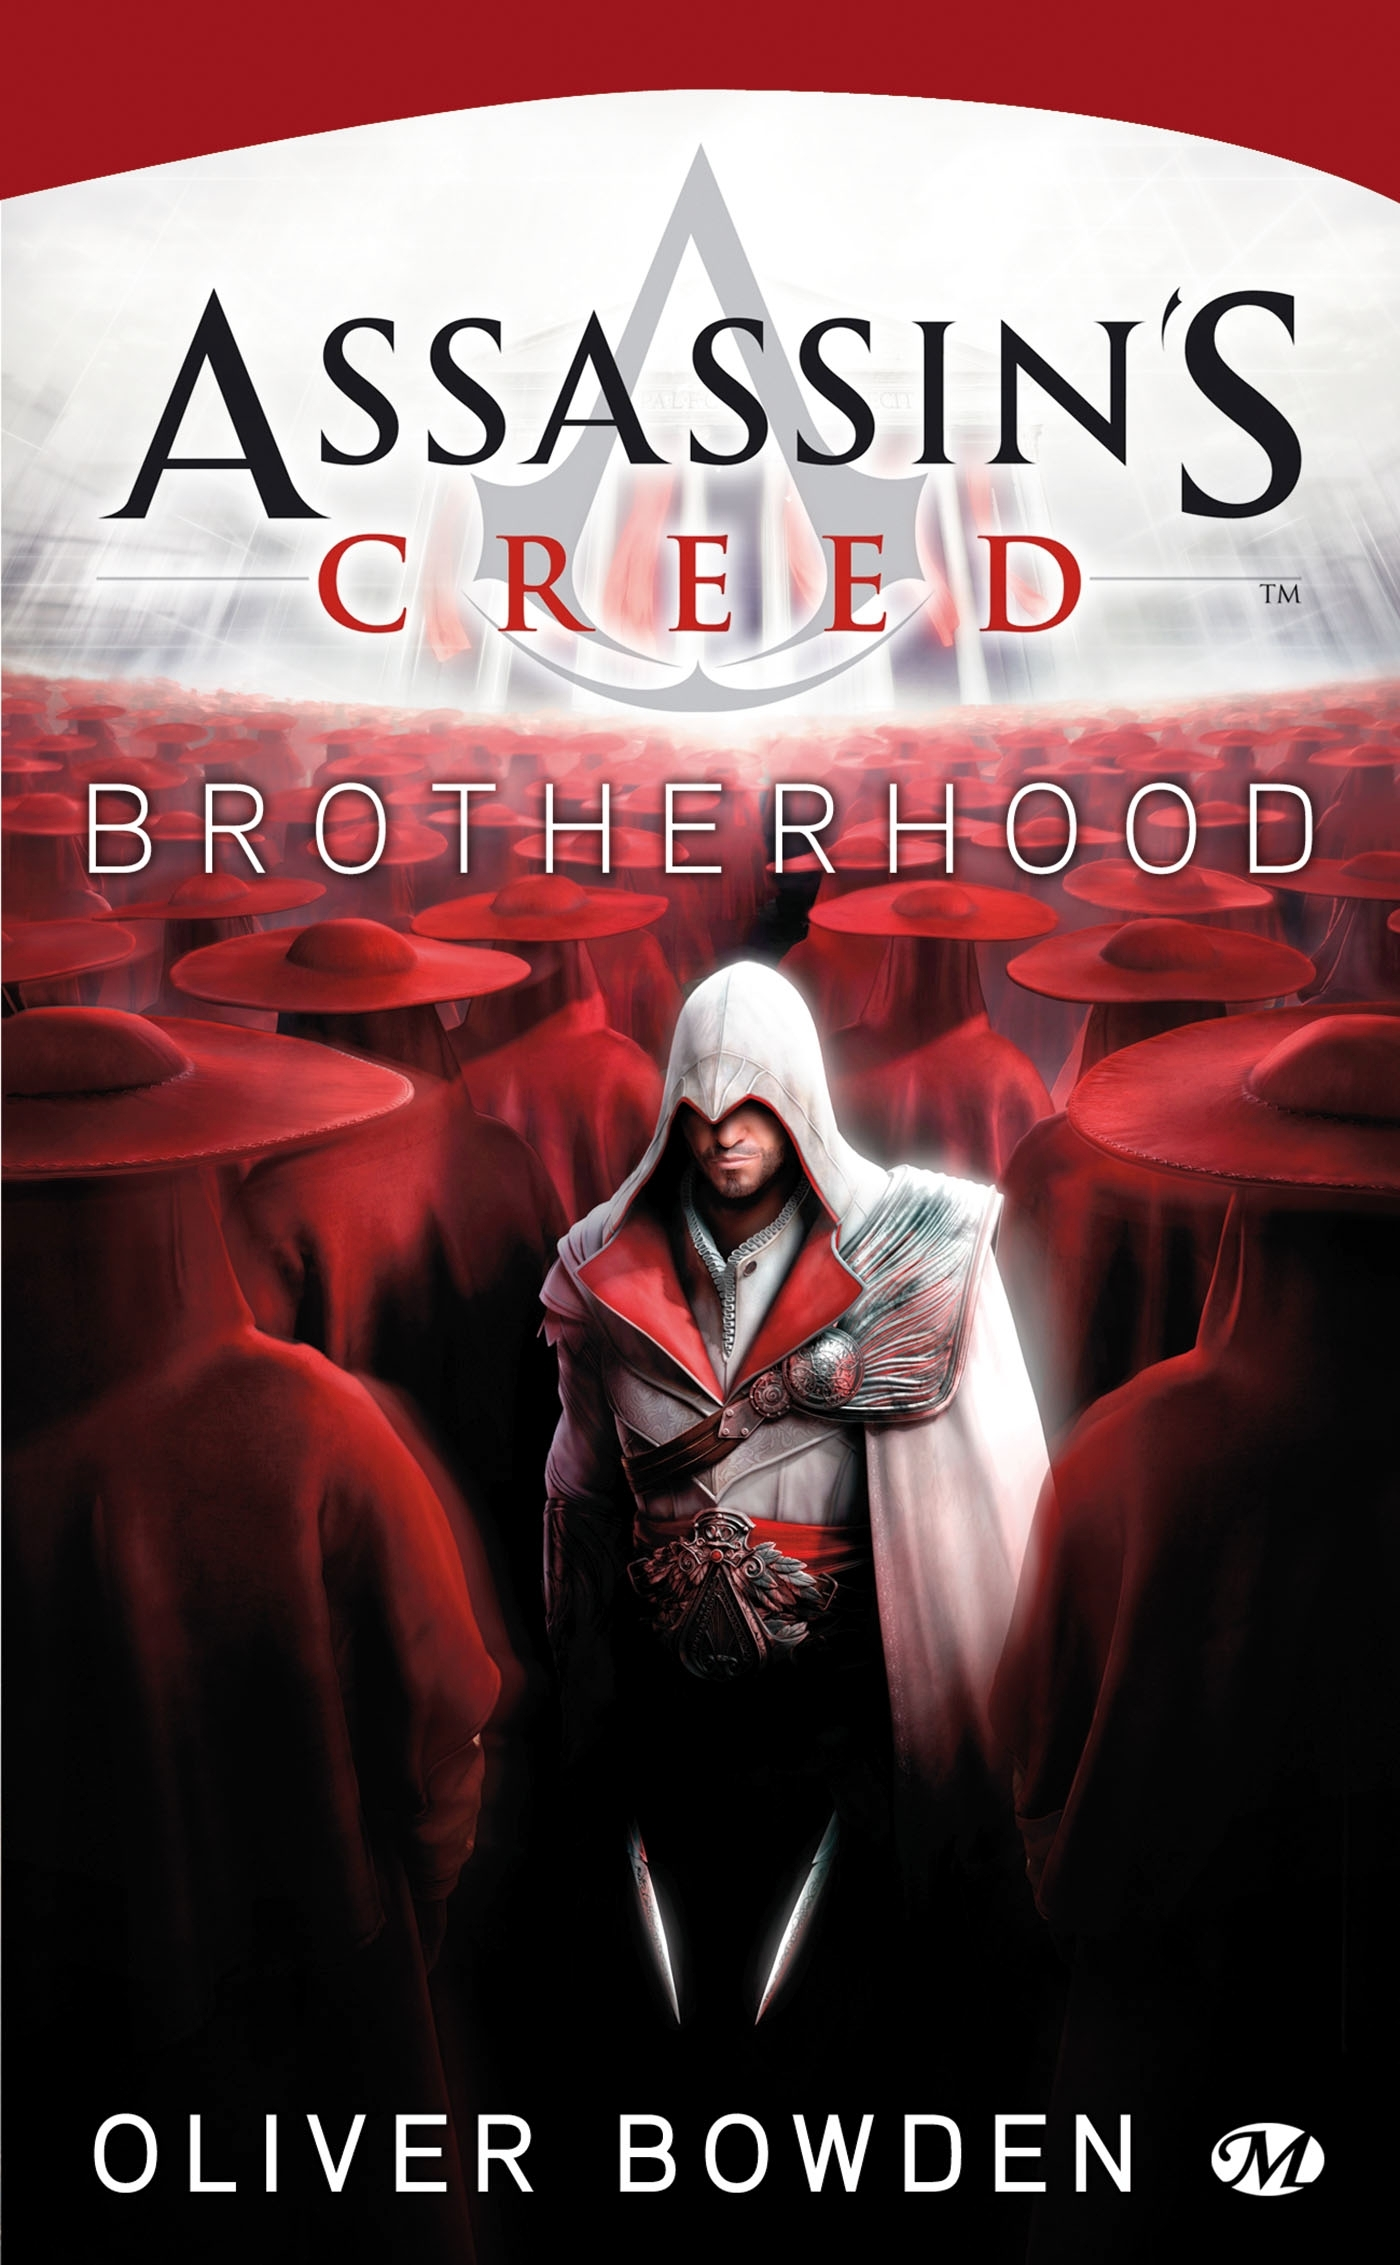 ASSASSIN'S CREED, T2 : ASSASSIN'S CREED : BROTHERHOOD